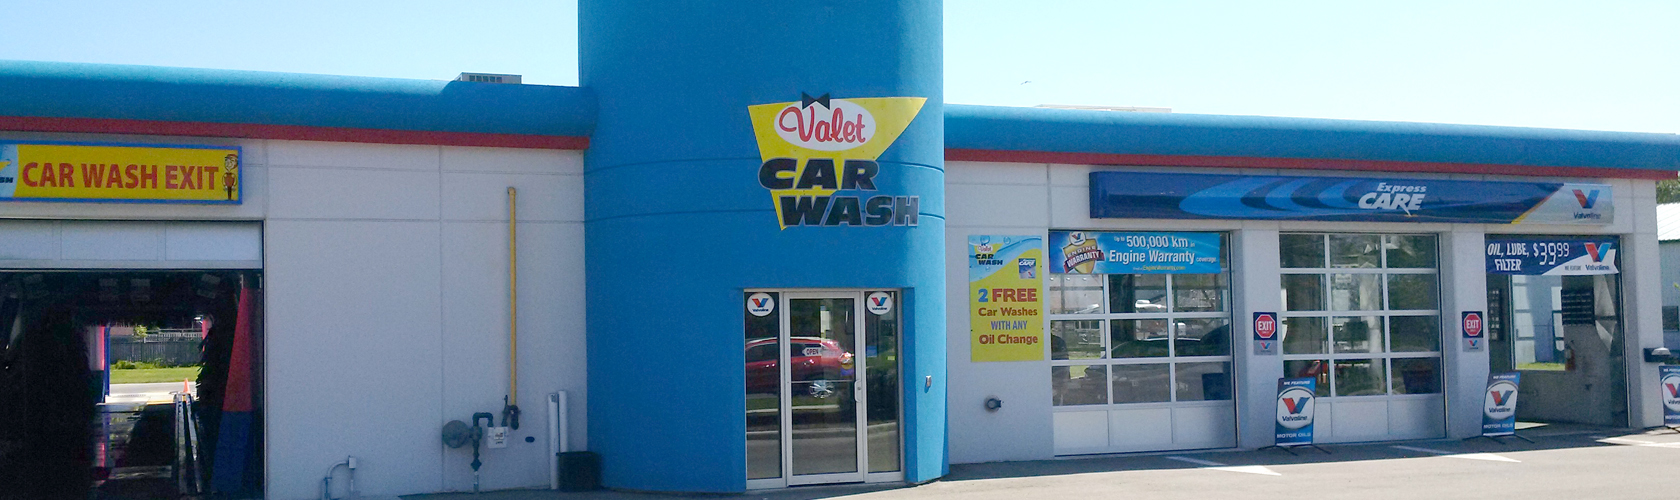 Car Wash Near Me Prices >> Valet Car Wash